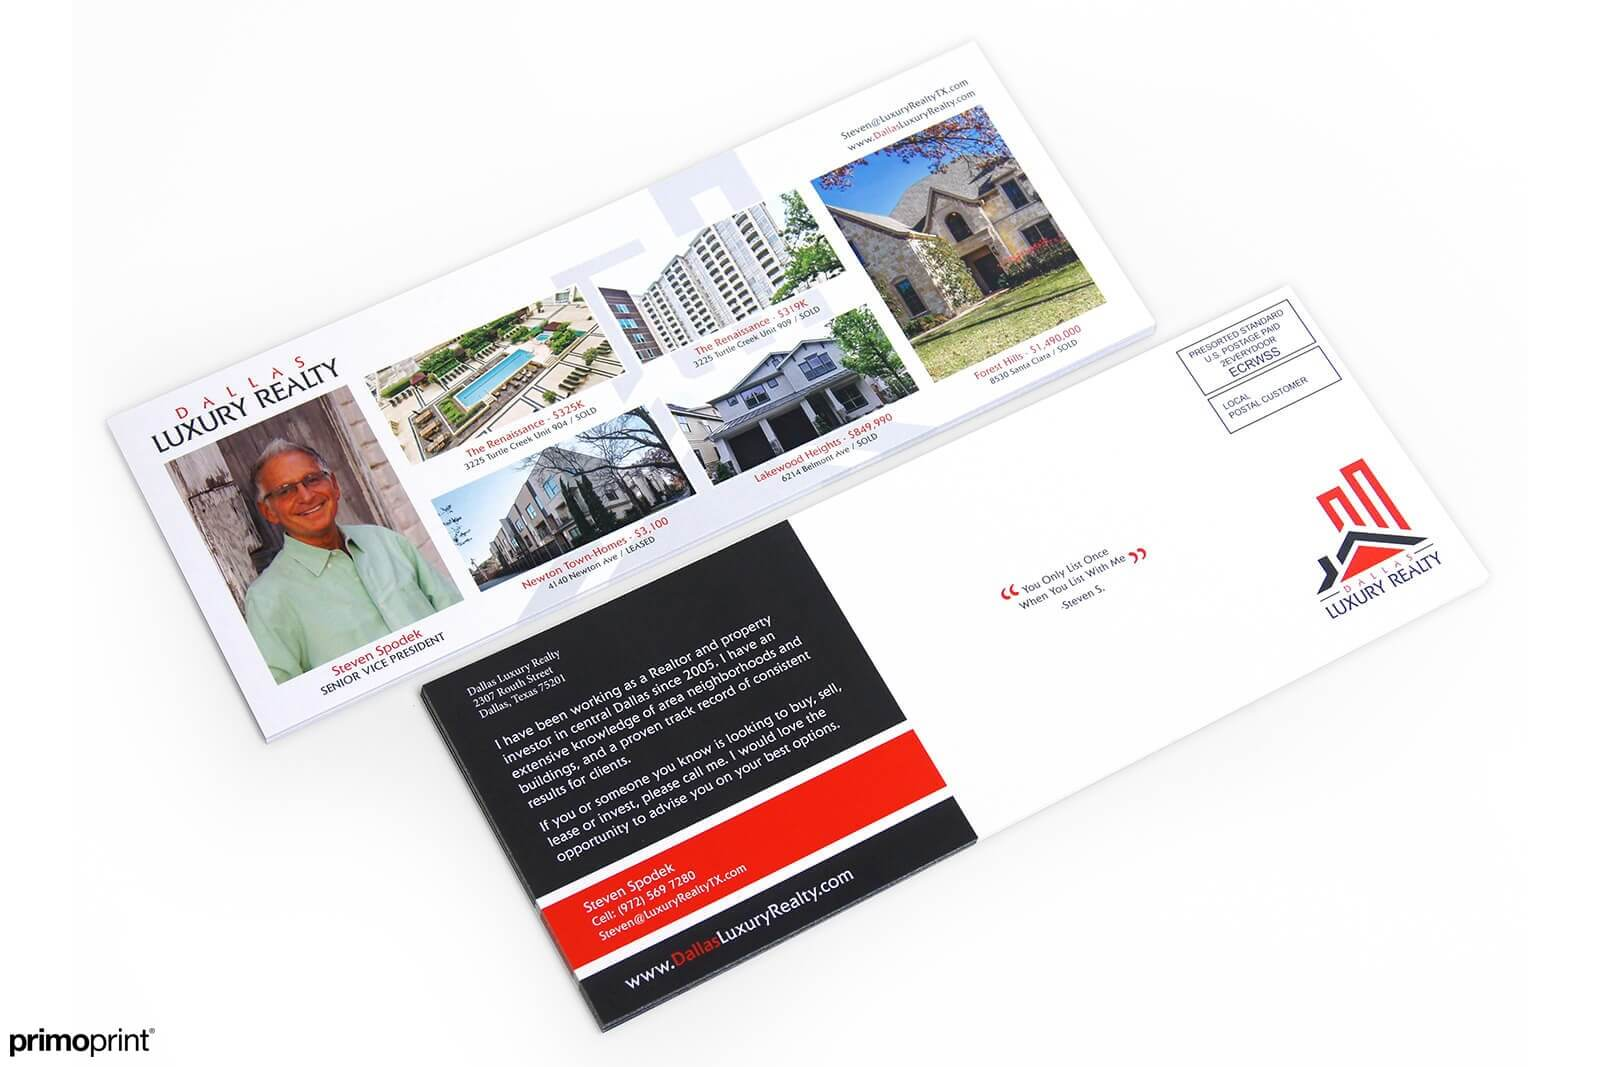 This is an example of a custom designed 4.5 x 12 inch glossy UV coated EDDM postcard printed for a realtor.